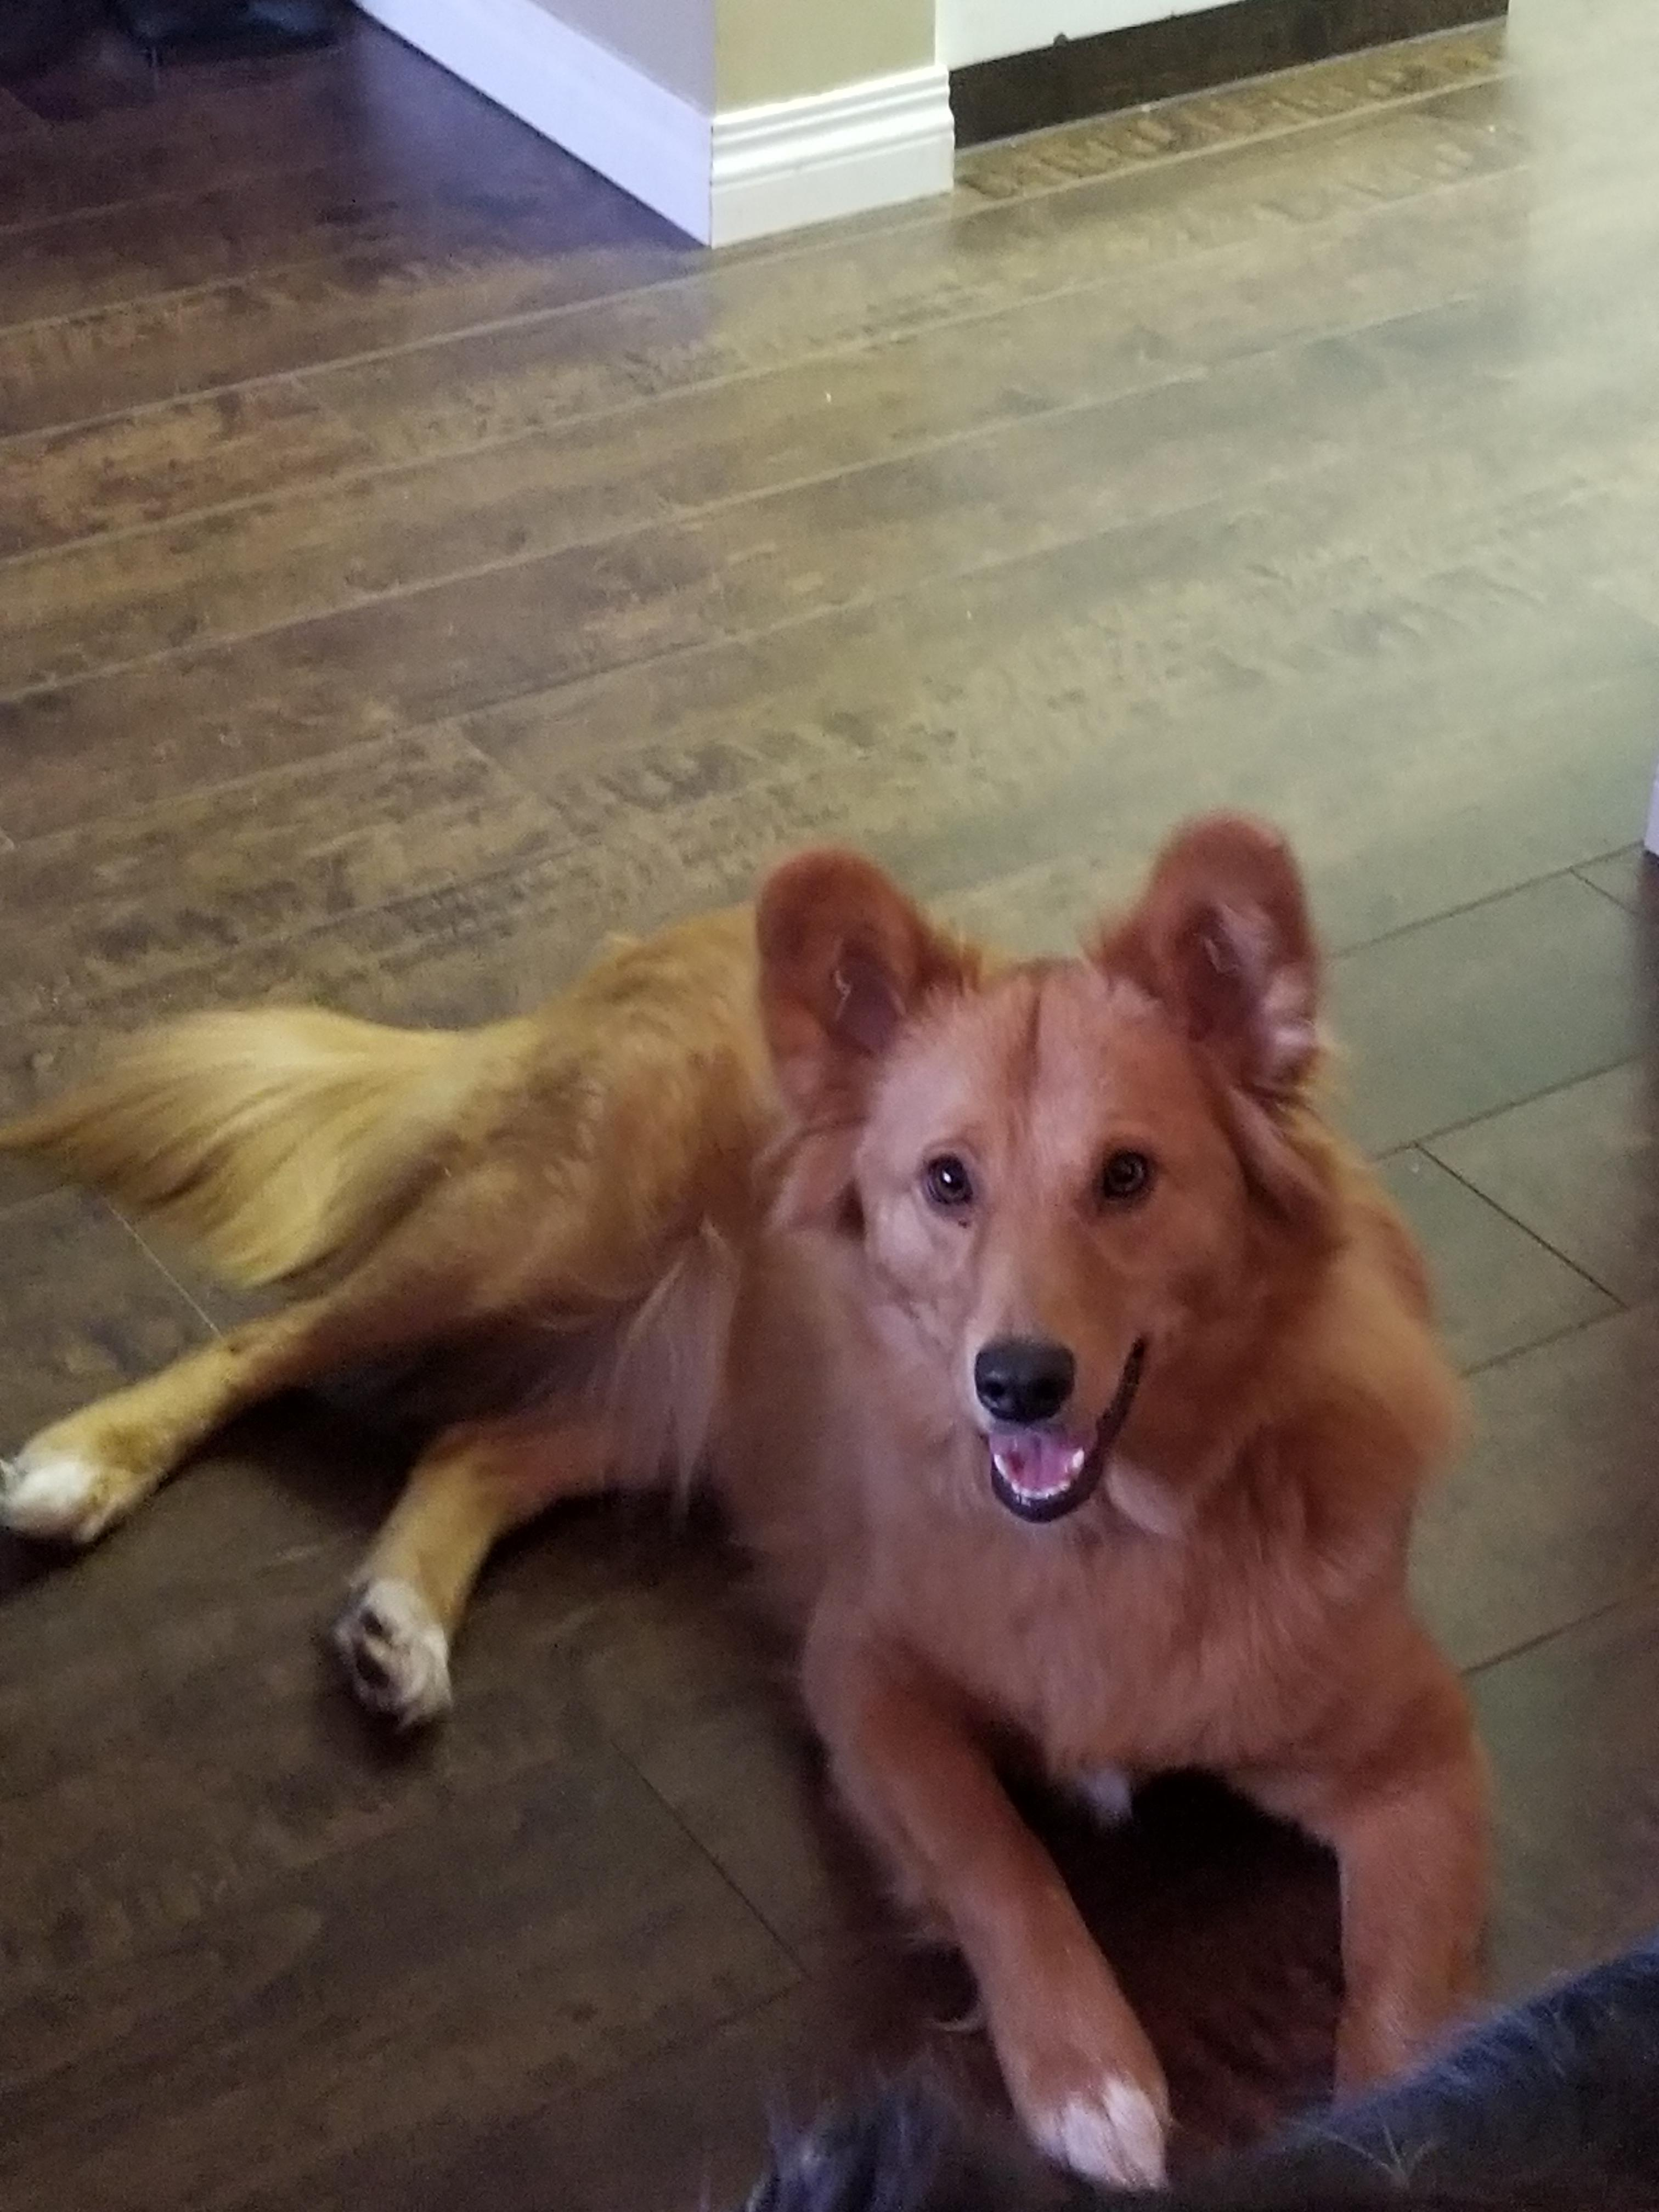 Groovy Adoption This Is Honey A Gen Retriever Corgi Mix This Is Honey A Gen Retriever Corgi Mix Aww Corgi Gen Retriever Mix Size Corgi Gen Retriever Mix bark post Corgi Golden Retriever